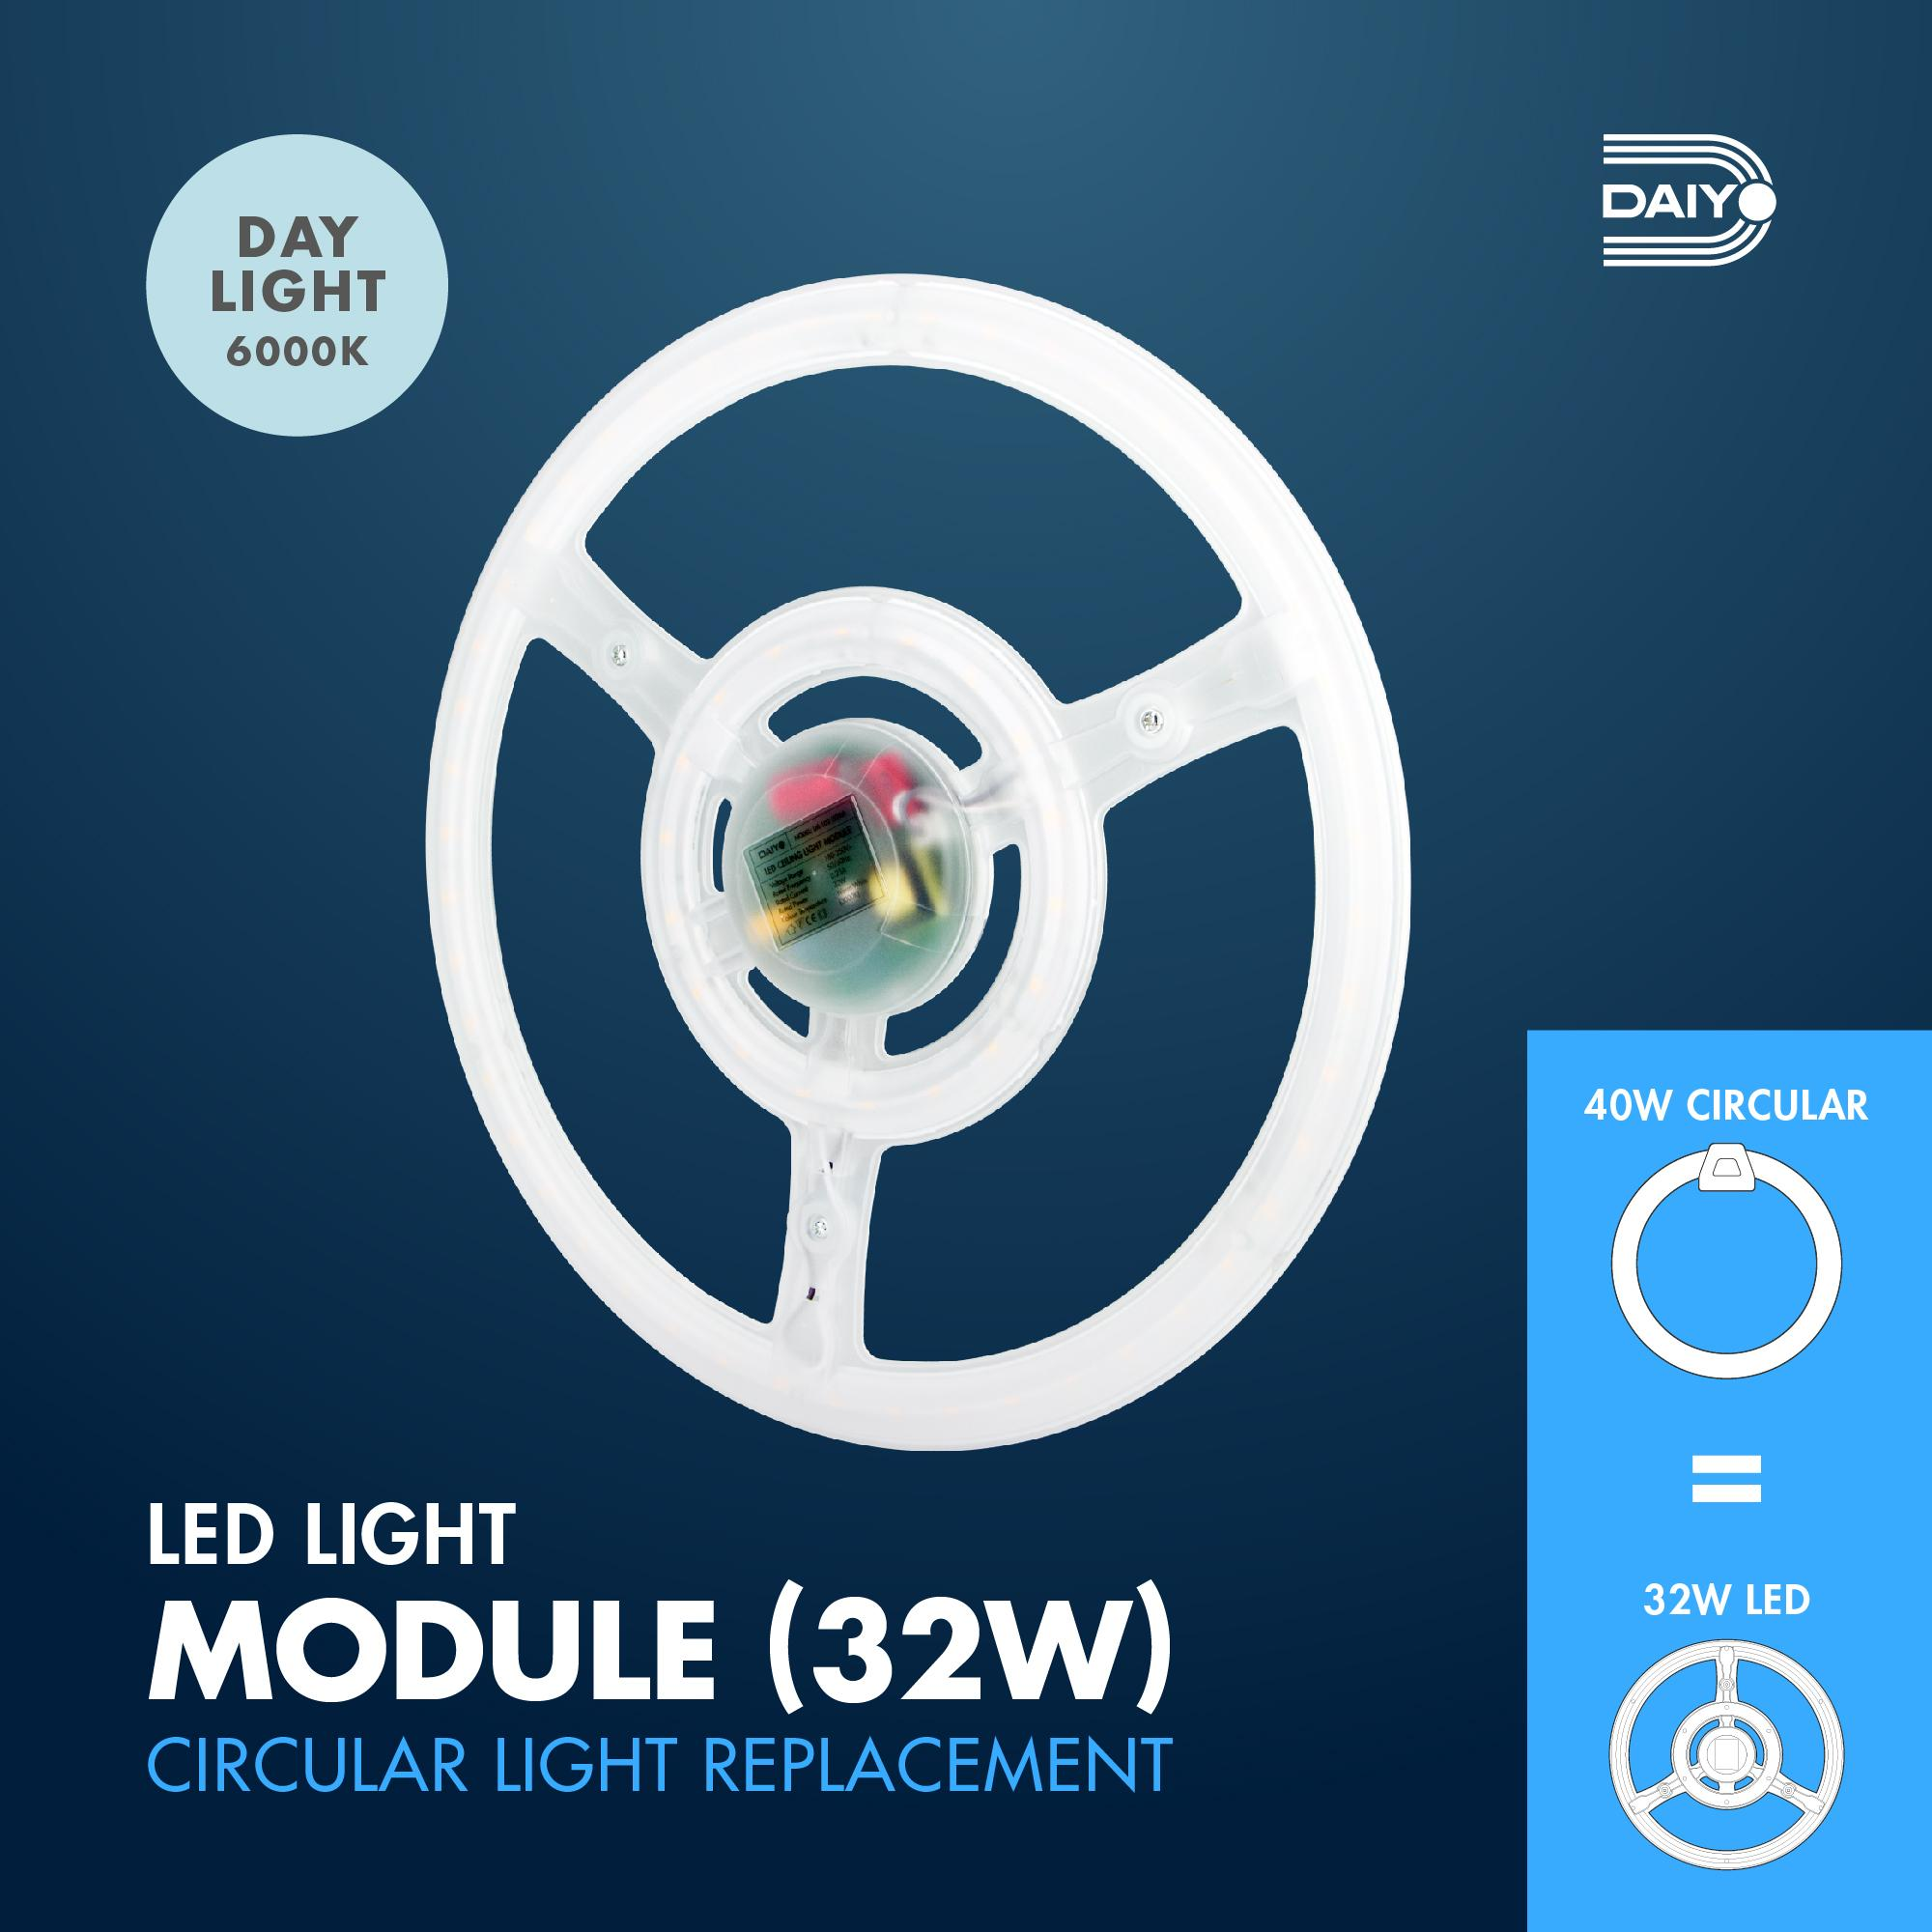 32W LED Round Shape Circular Magnetic Base Ceiling Panel (Day Light)